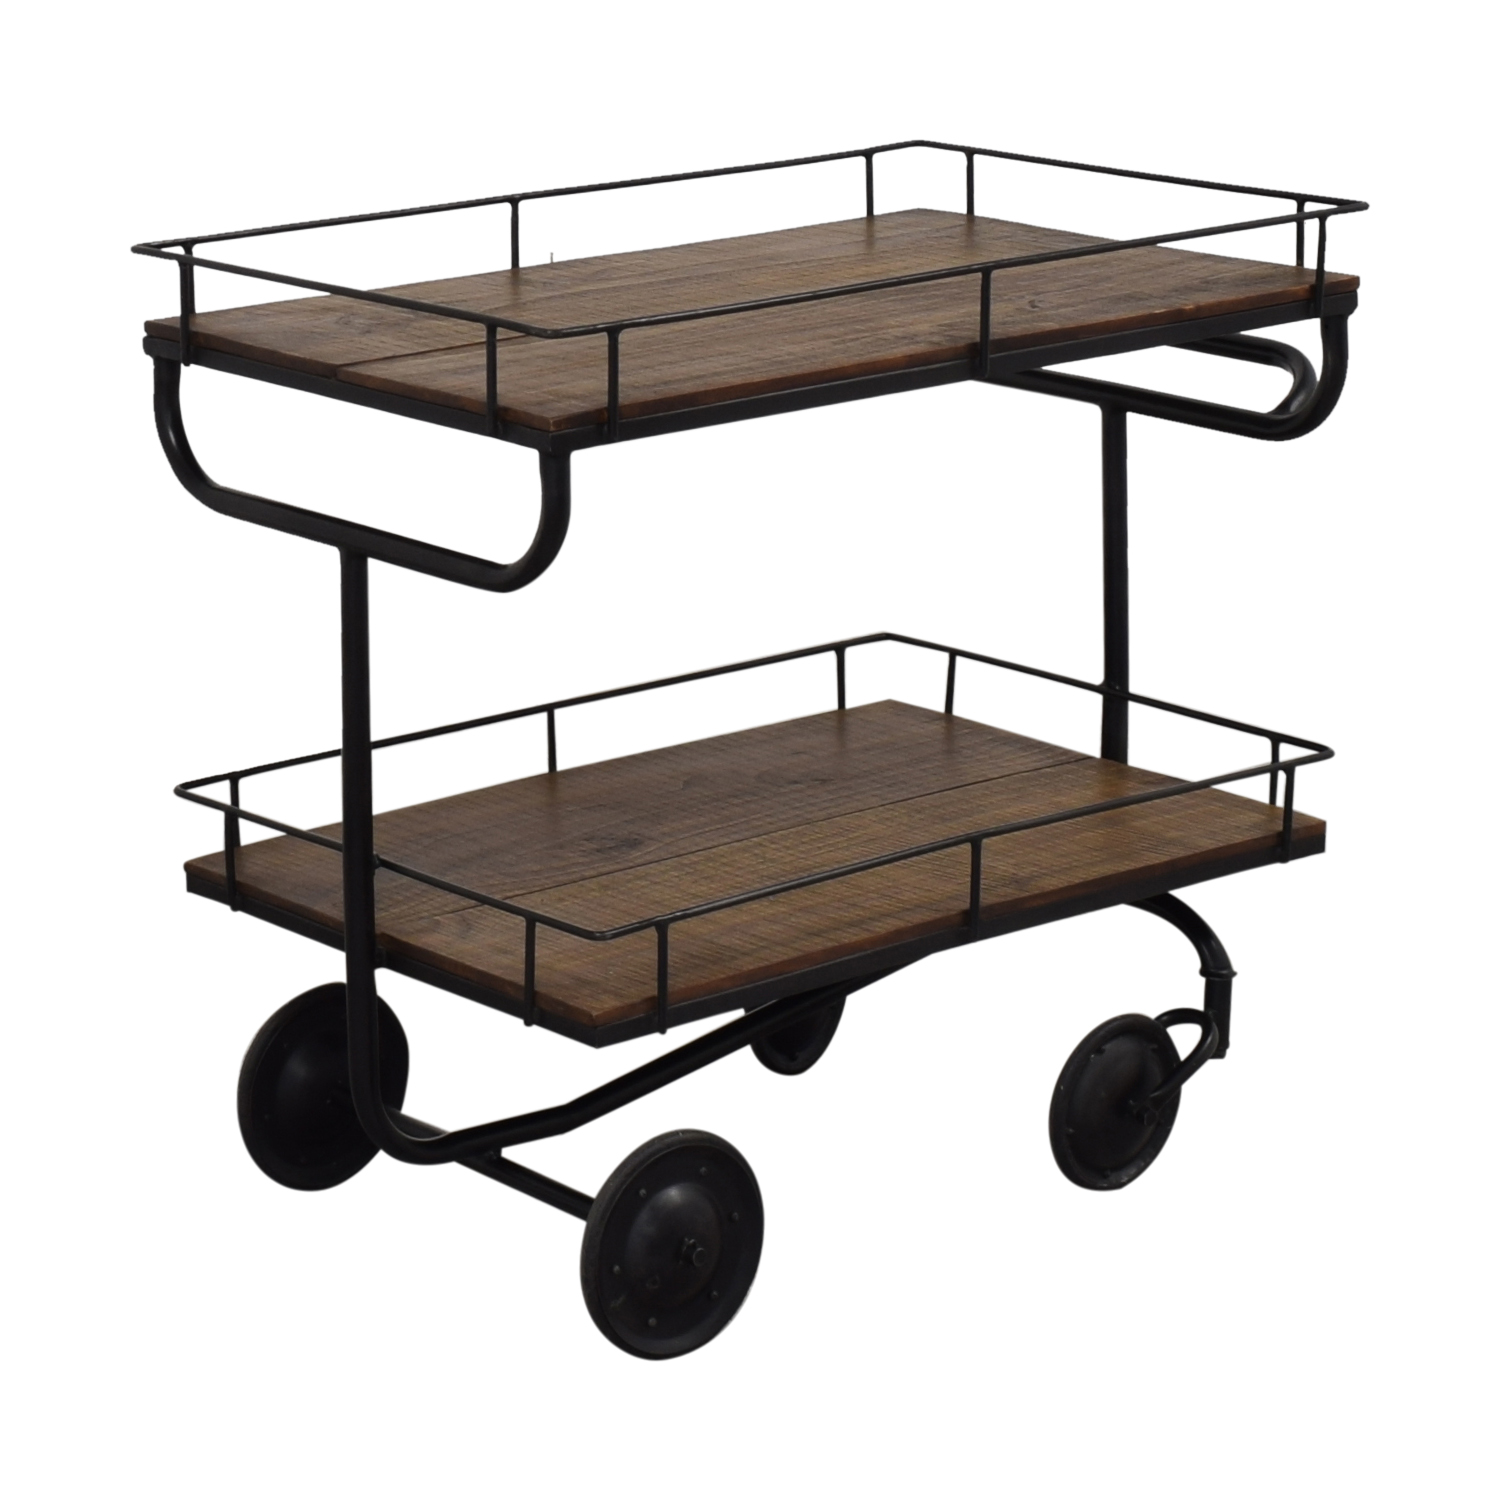 Restoration Hardware Warehouse Trolley Bar Cart / Tables